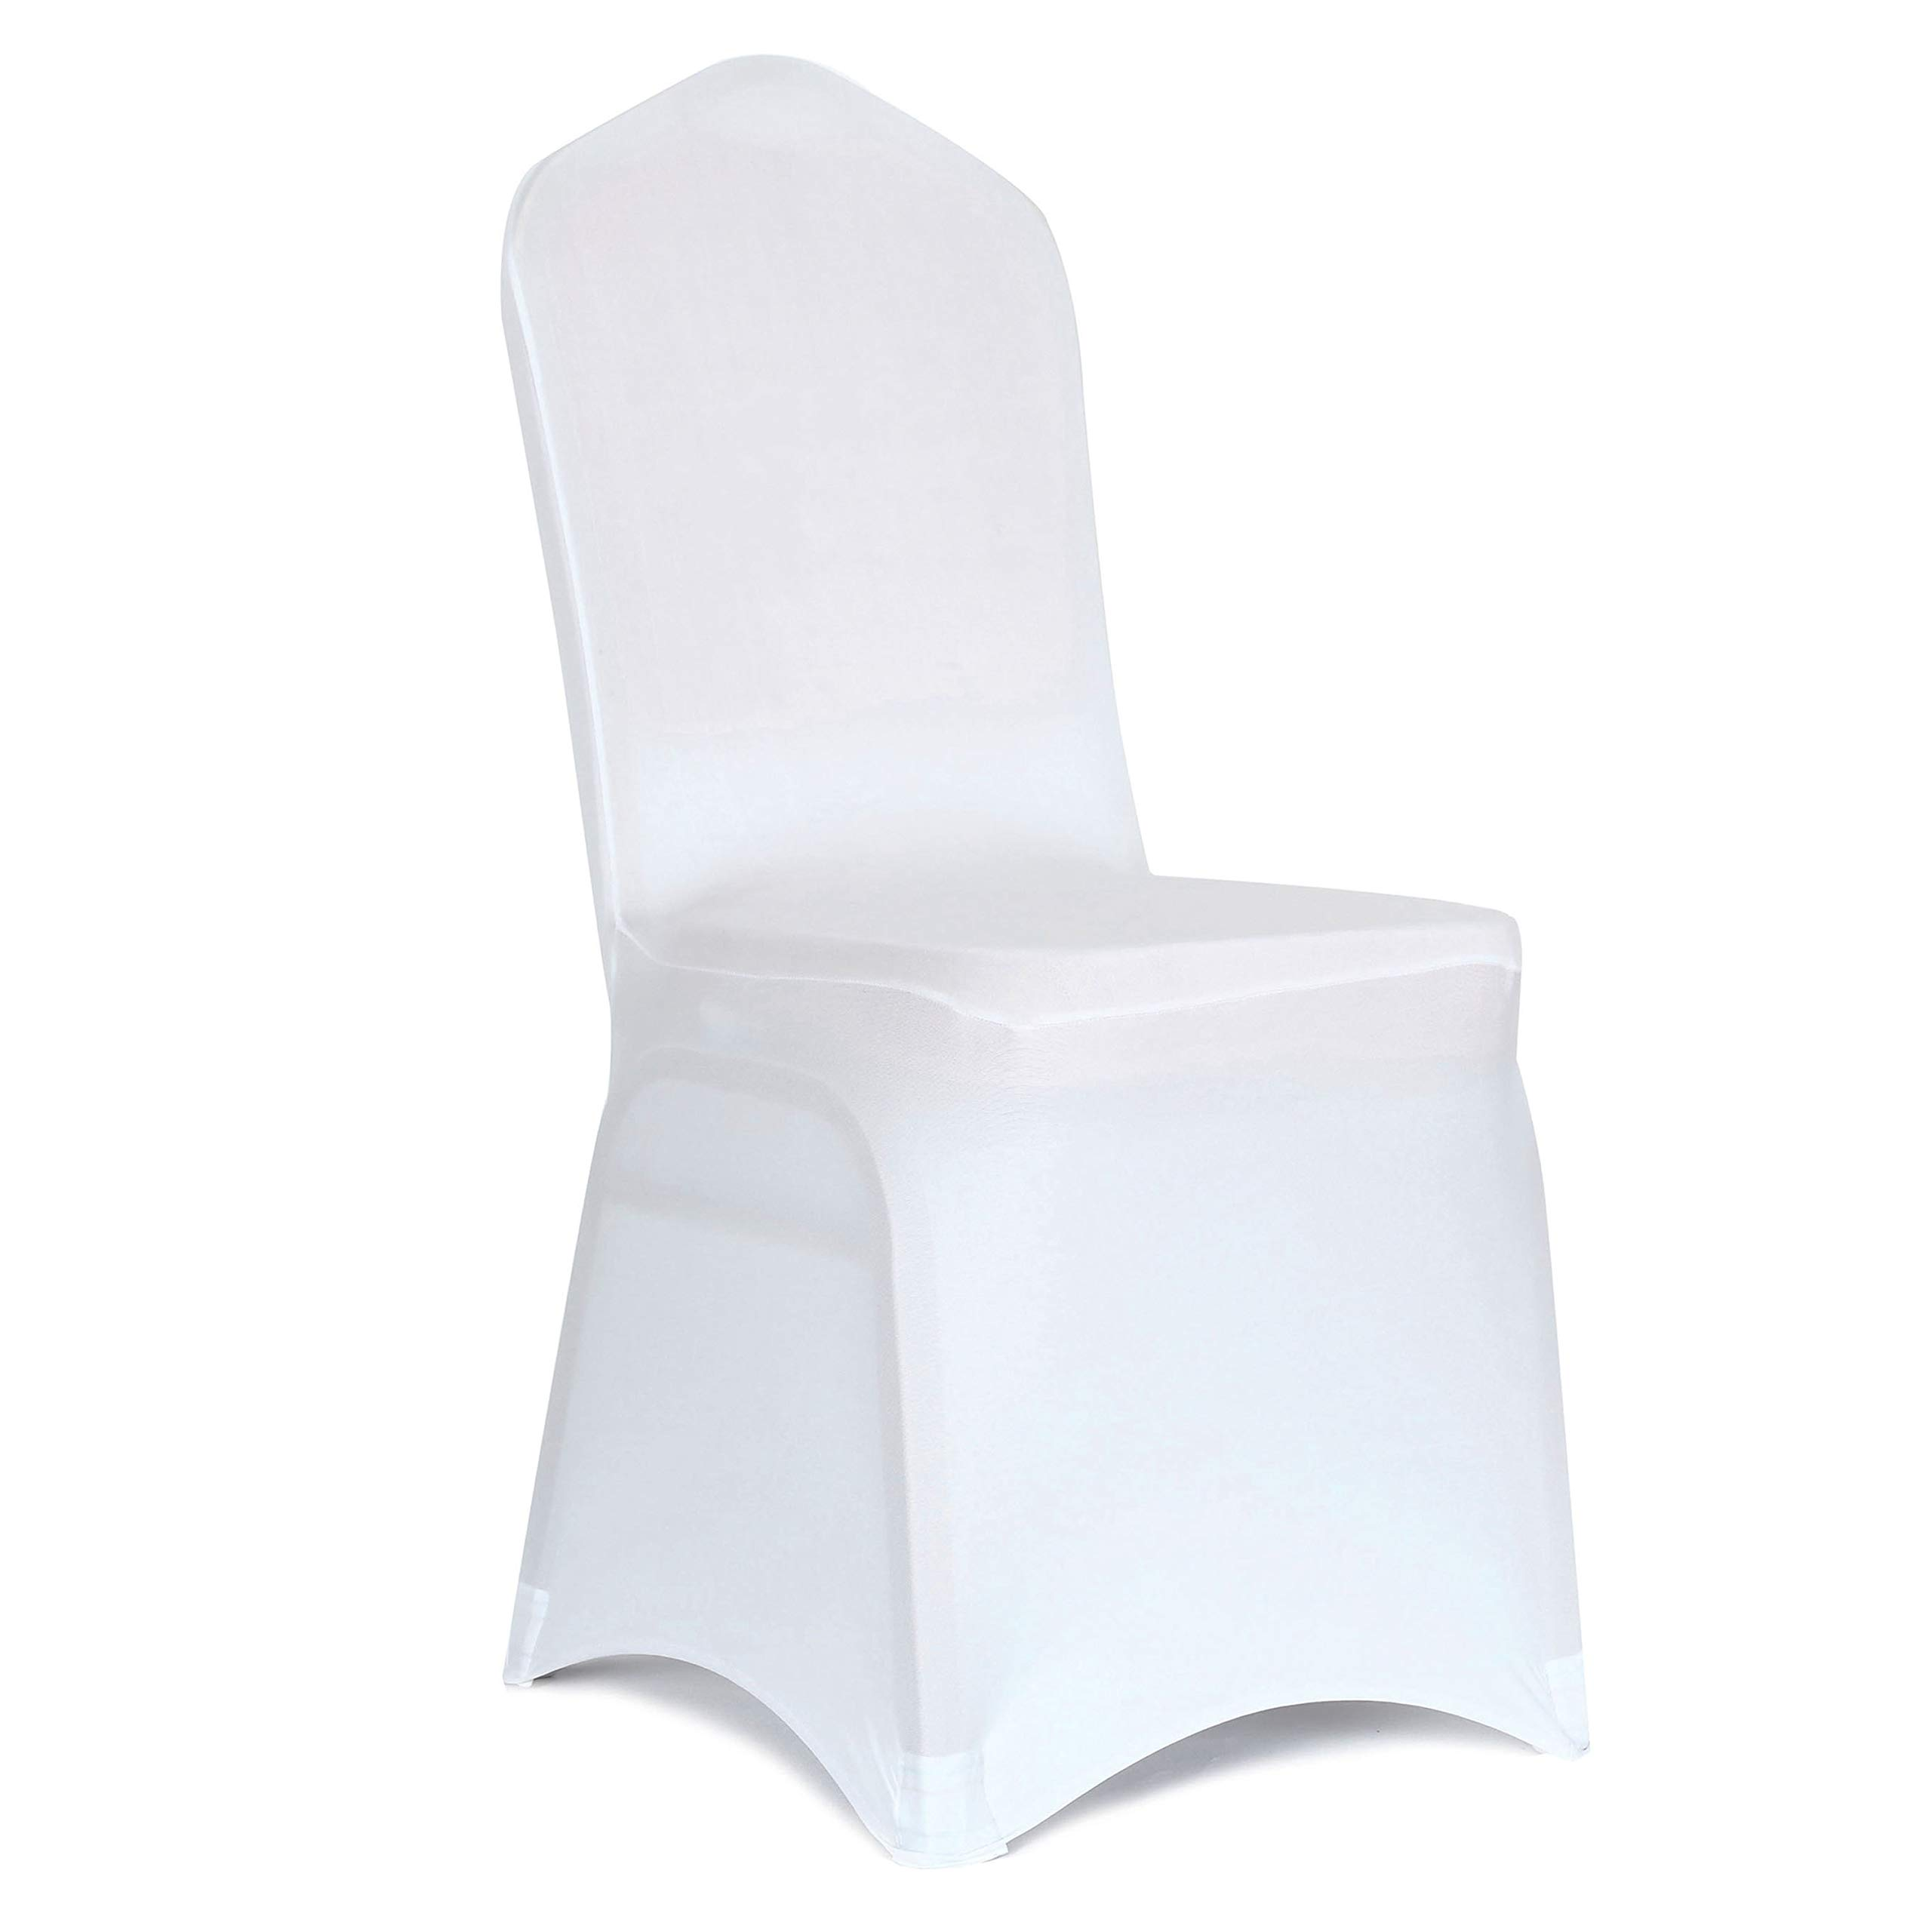 Obstal 10 PCS White Spandex Dining Room Chair Covers for Living Room - Universal Stretch Chair Slipcovers Protector for Wedding, Banquet, and Party